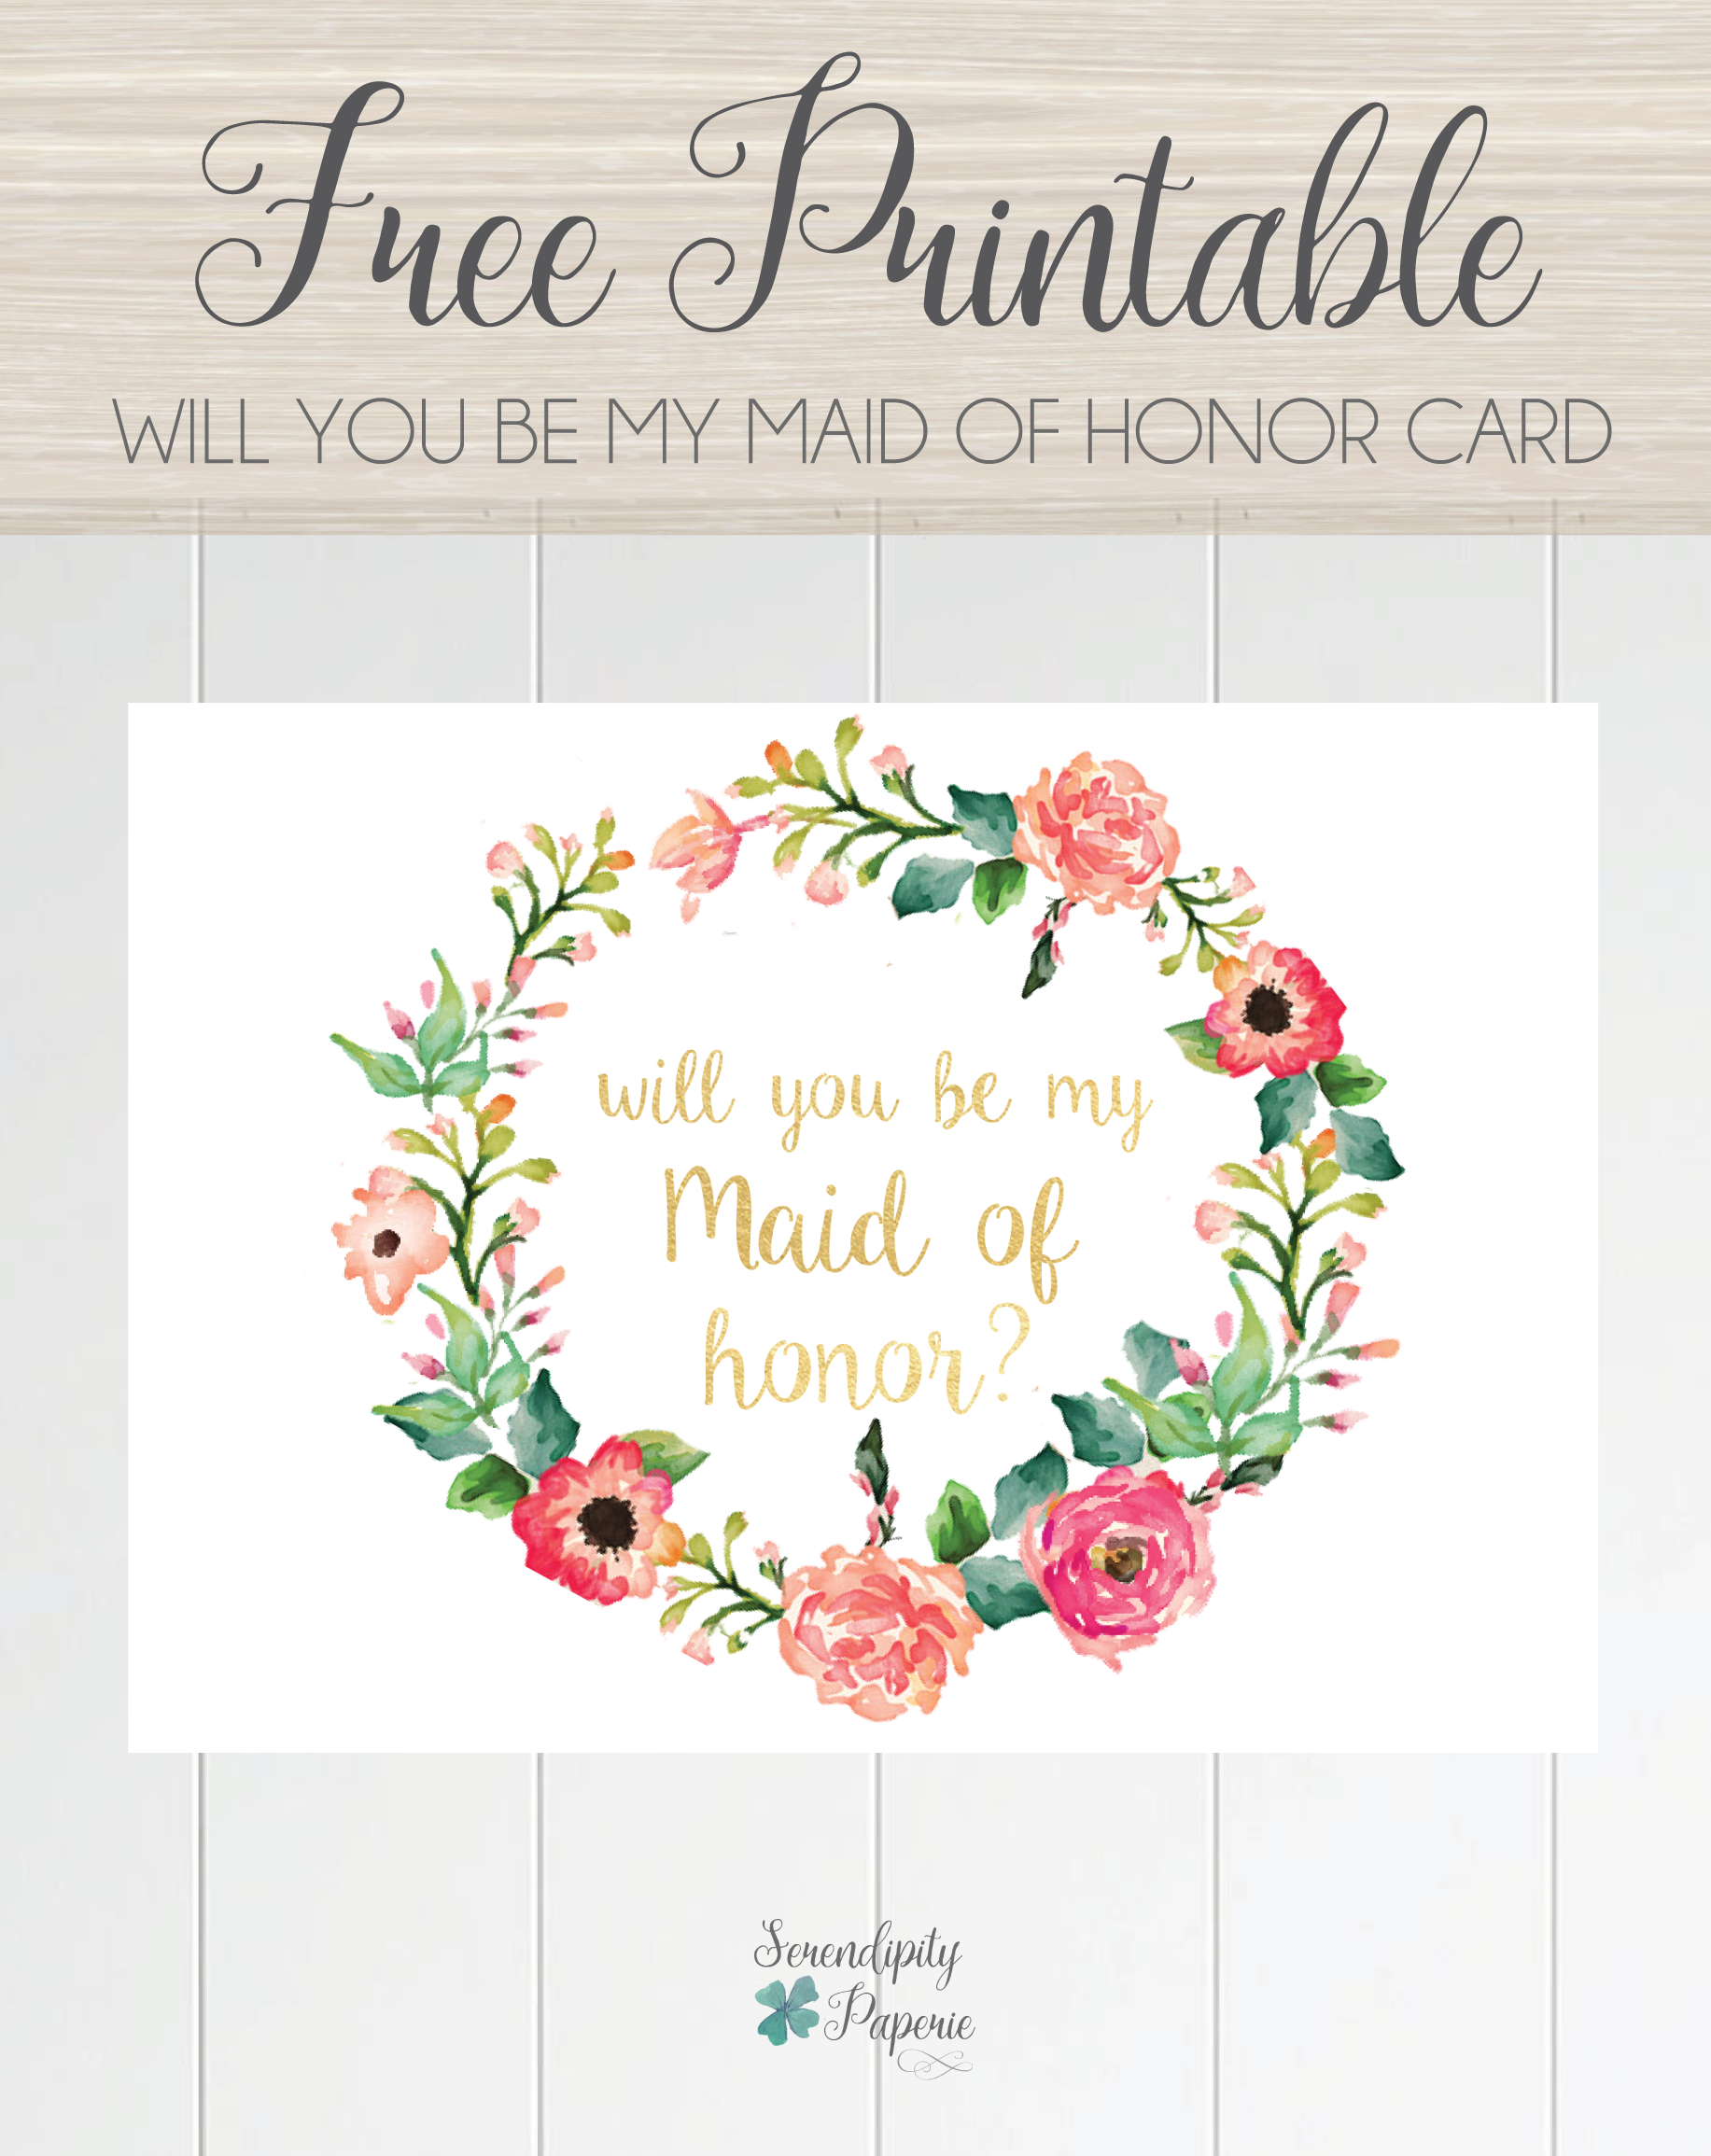 Free Printable Will You Be My Maid Of Honor Card, Floral Wreath - Will You Be My Bridesmaid Free Printable